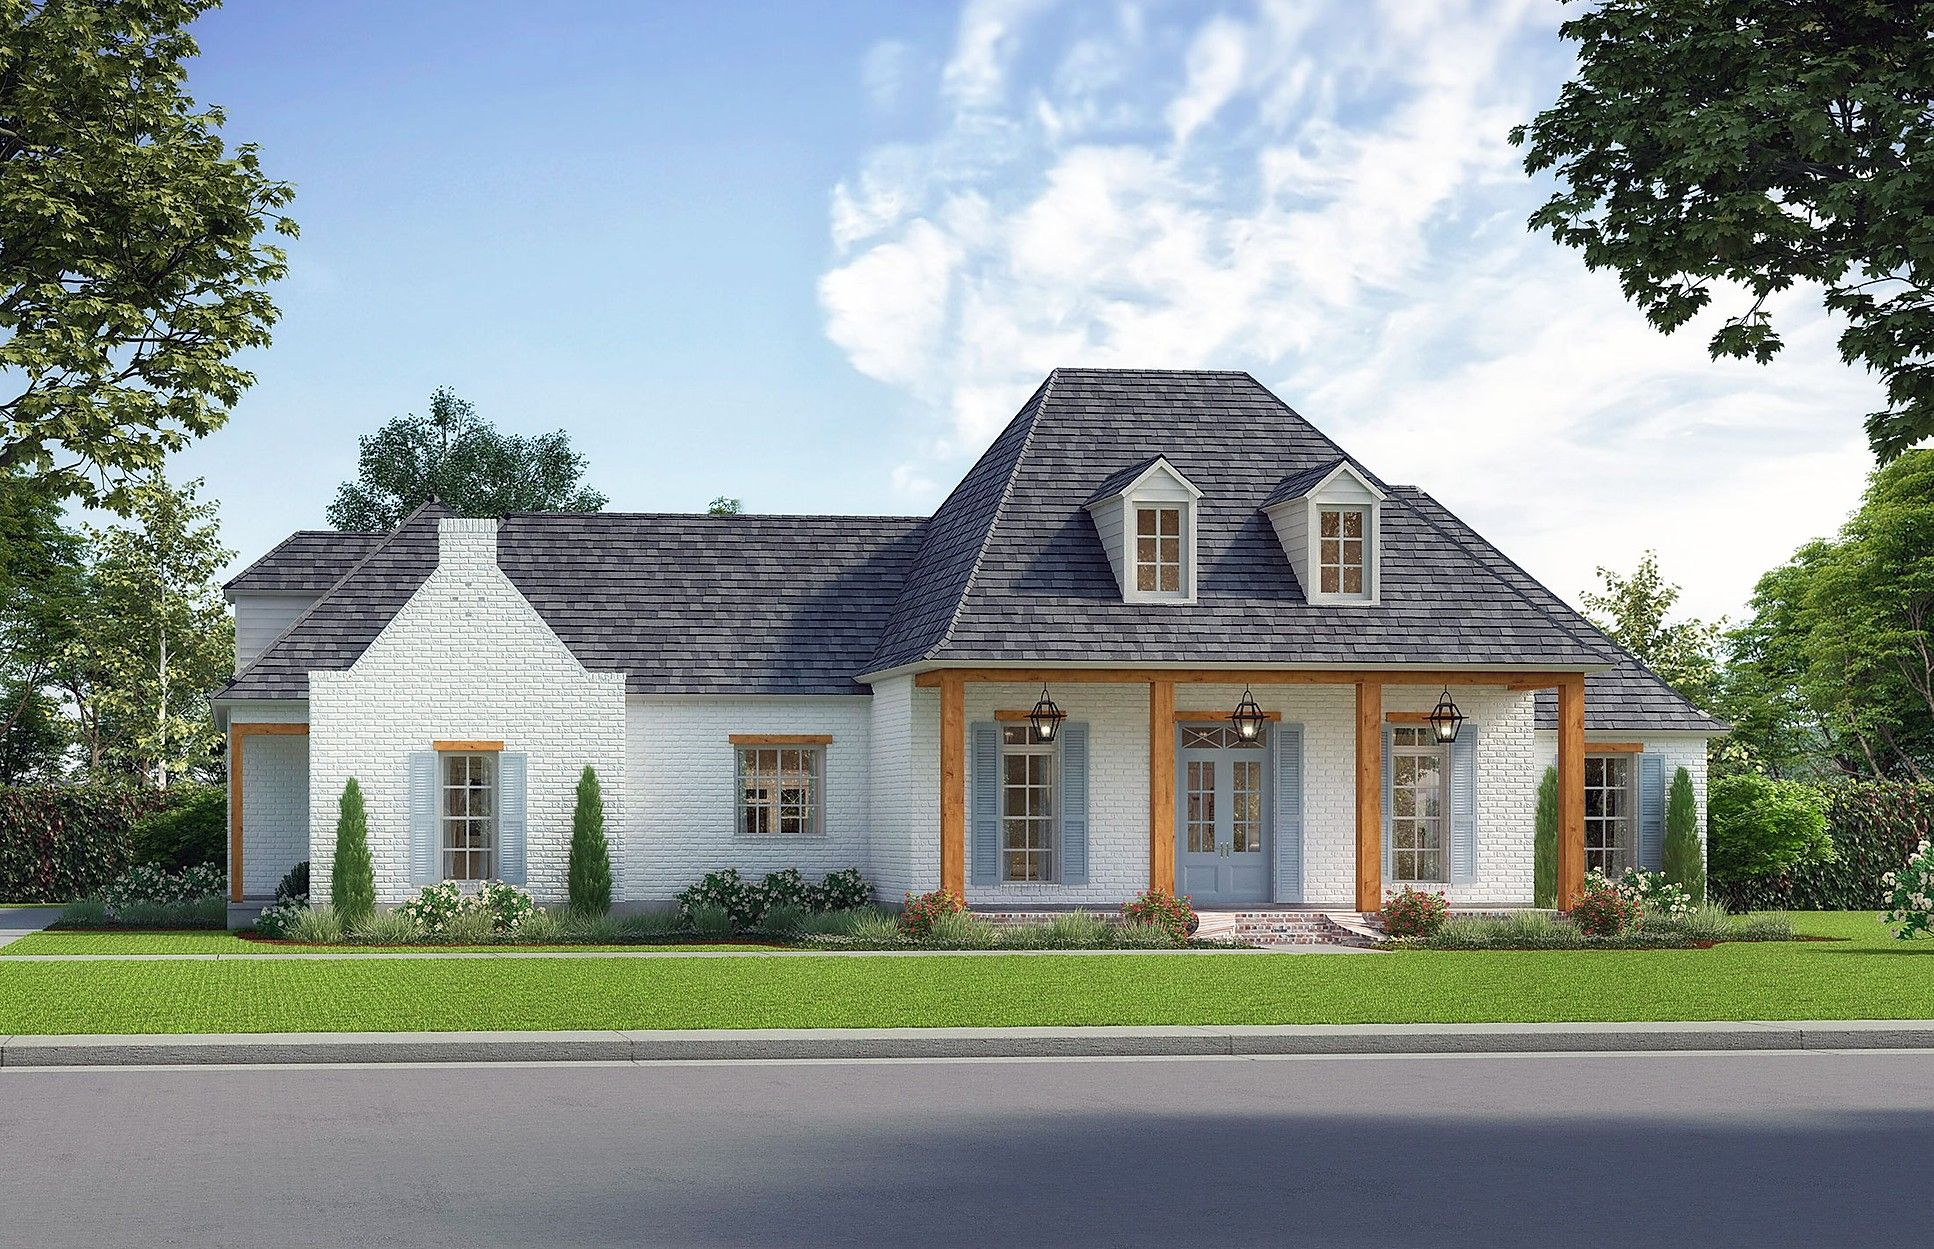 Madden Home Design The Jasmine Country Style House Plans French Country House Plans Madden Home Design